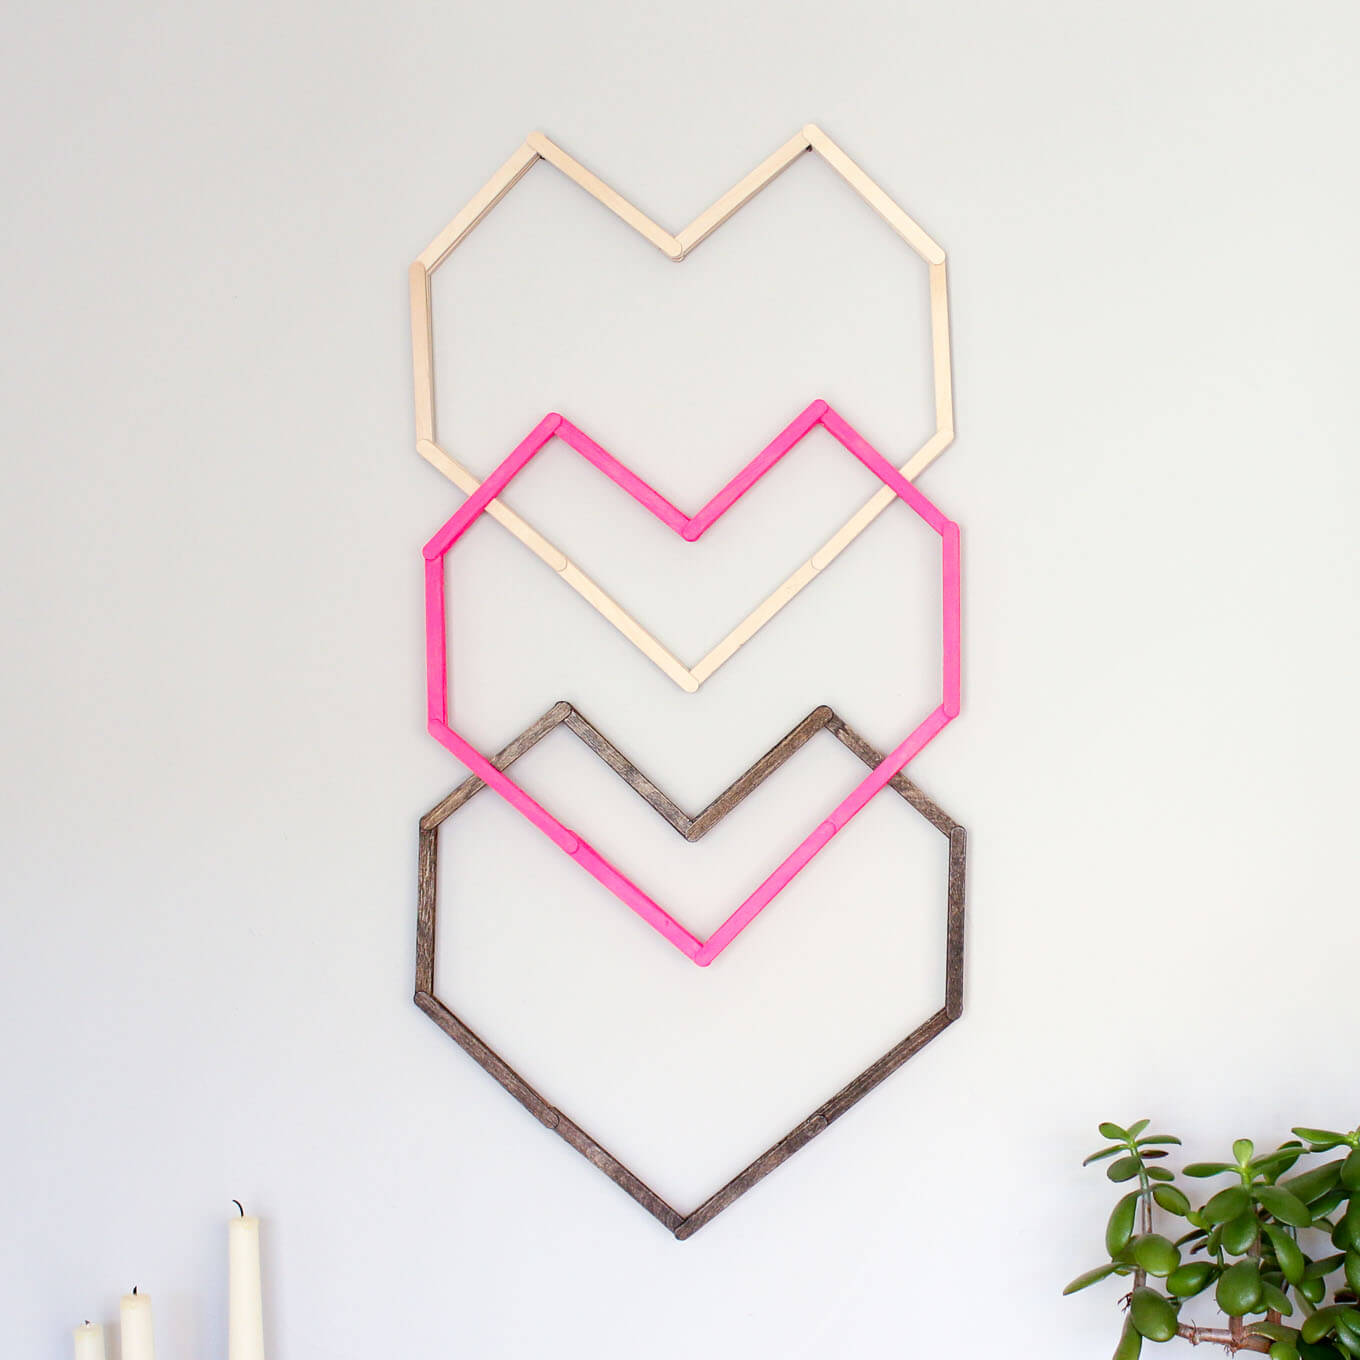 Cool Bedroom Ideas For Teenage Girls Geometric Heart Diy Wall Art With Popsicle Sticks